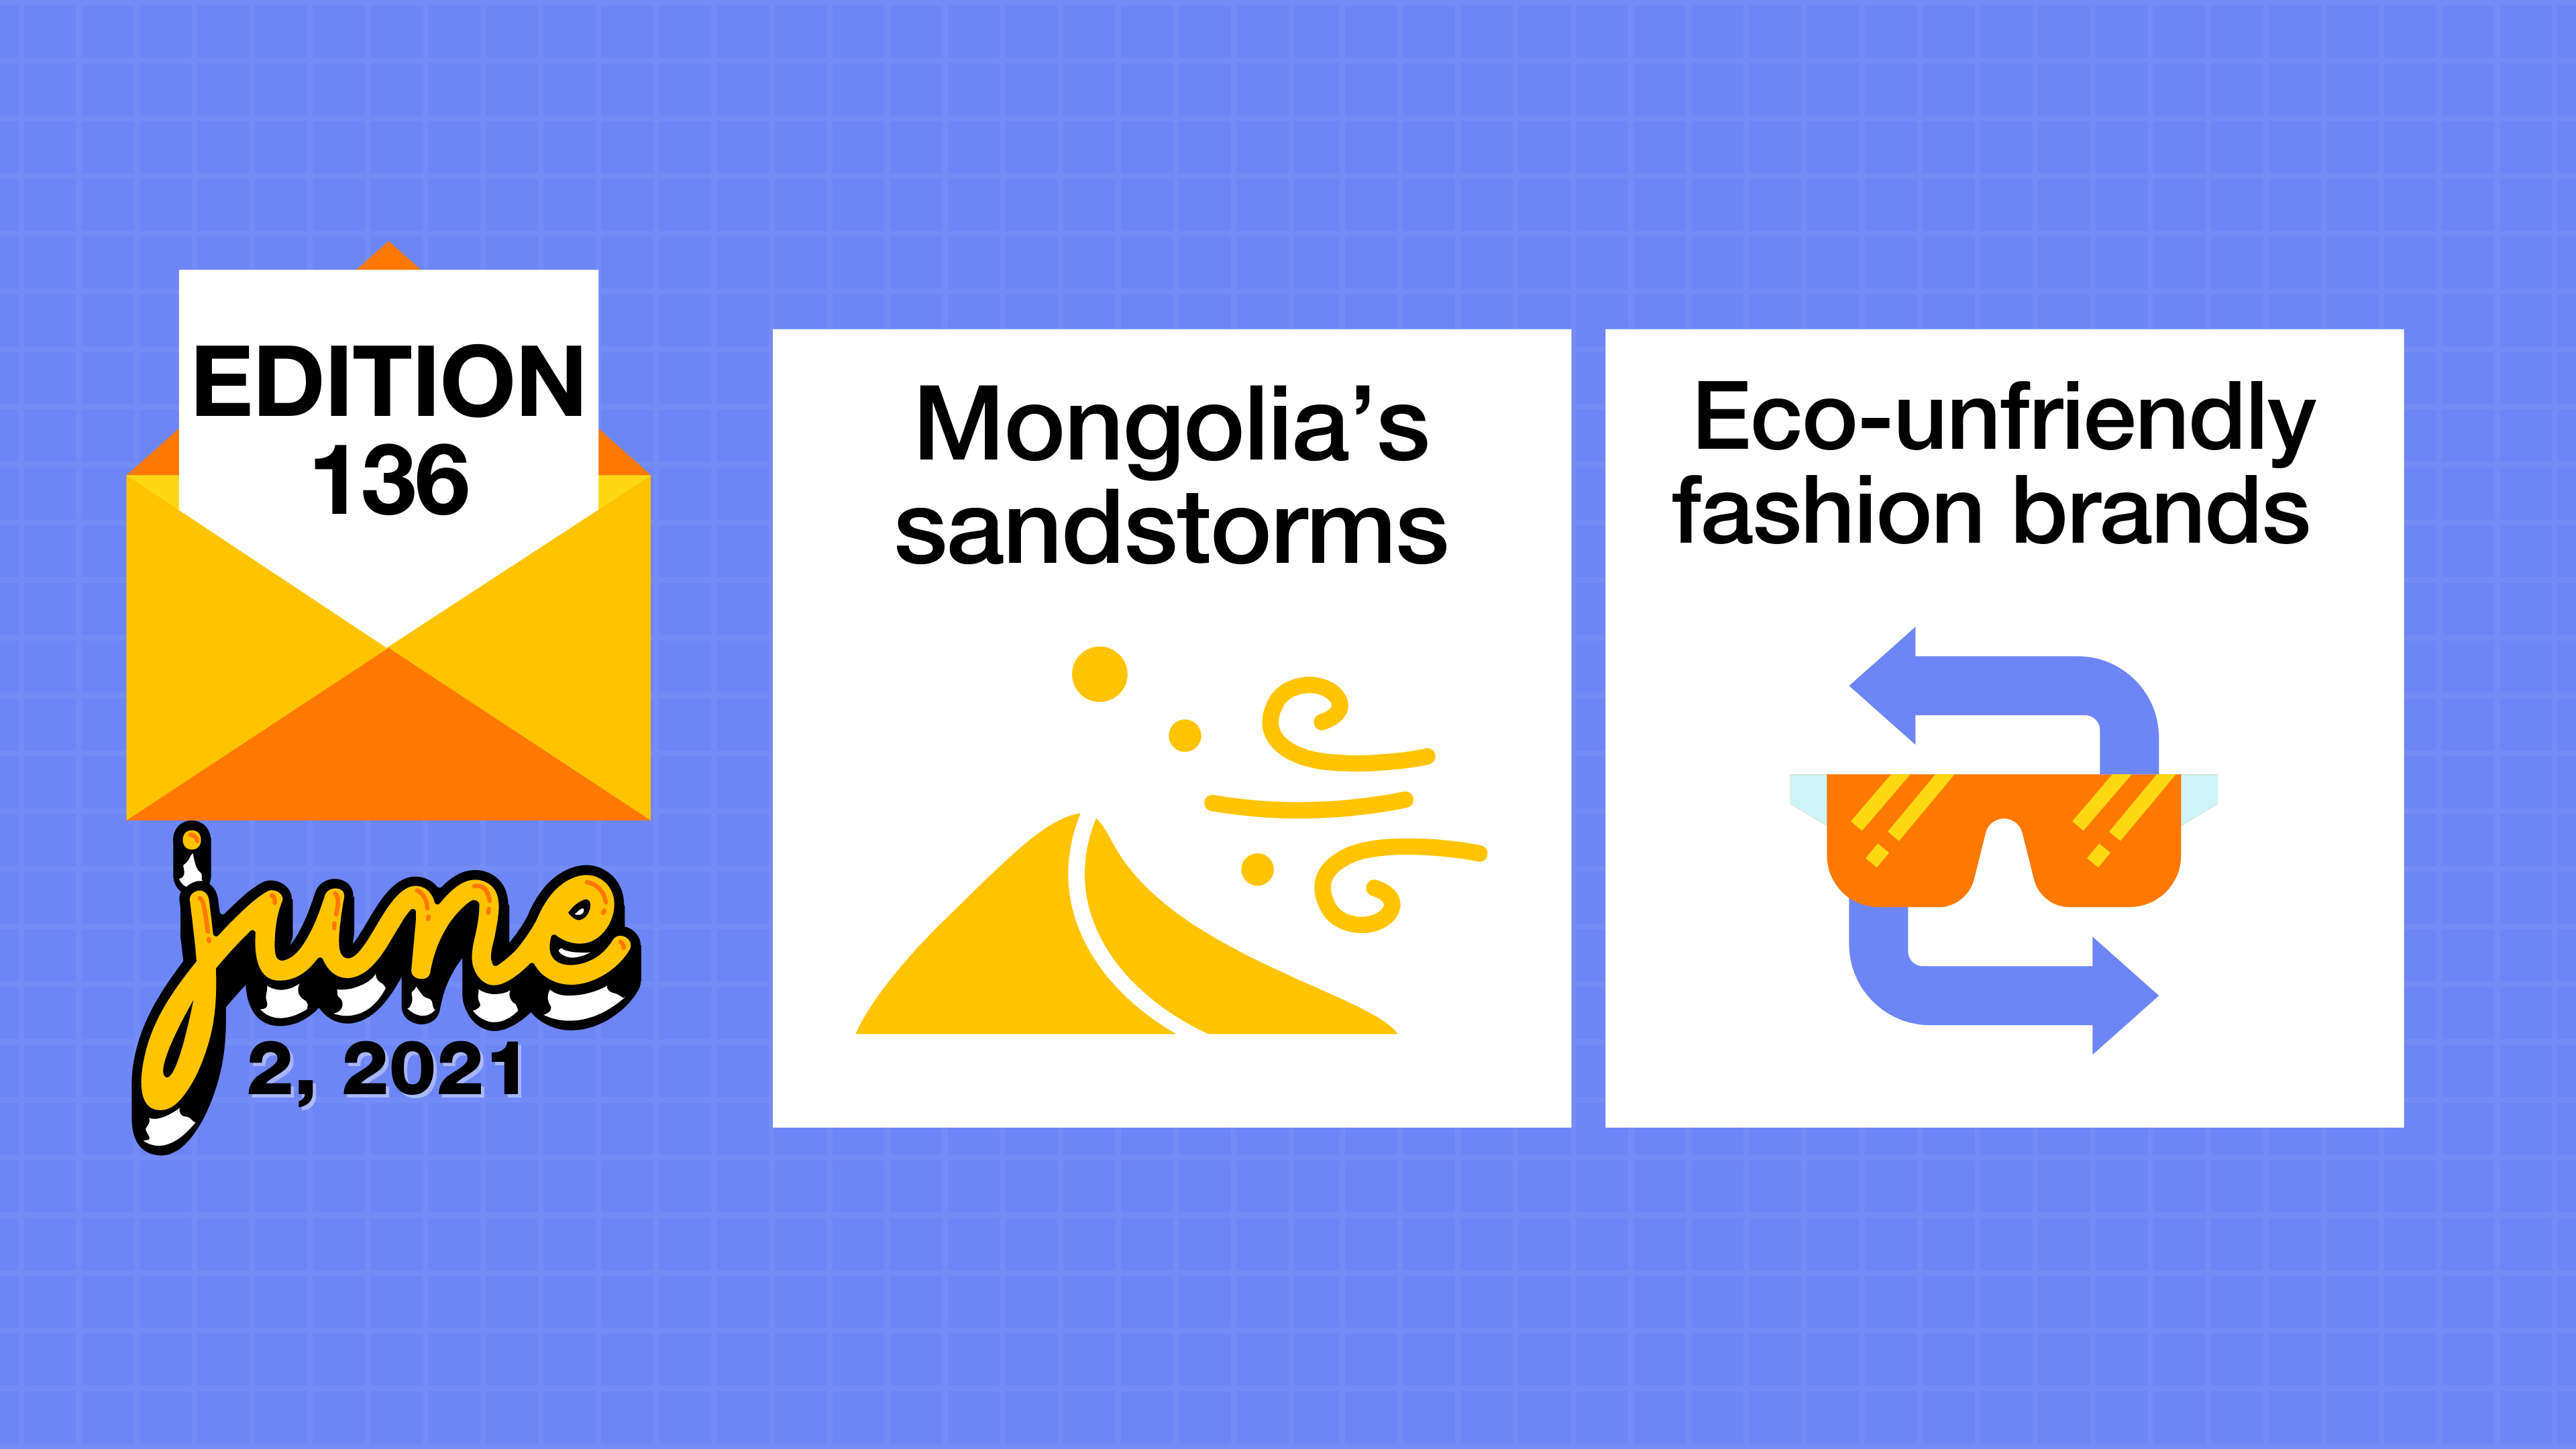 Mongolia's sandstorms and eco-unfriendly fashion brands